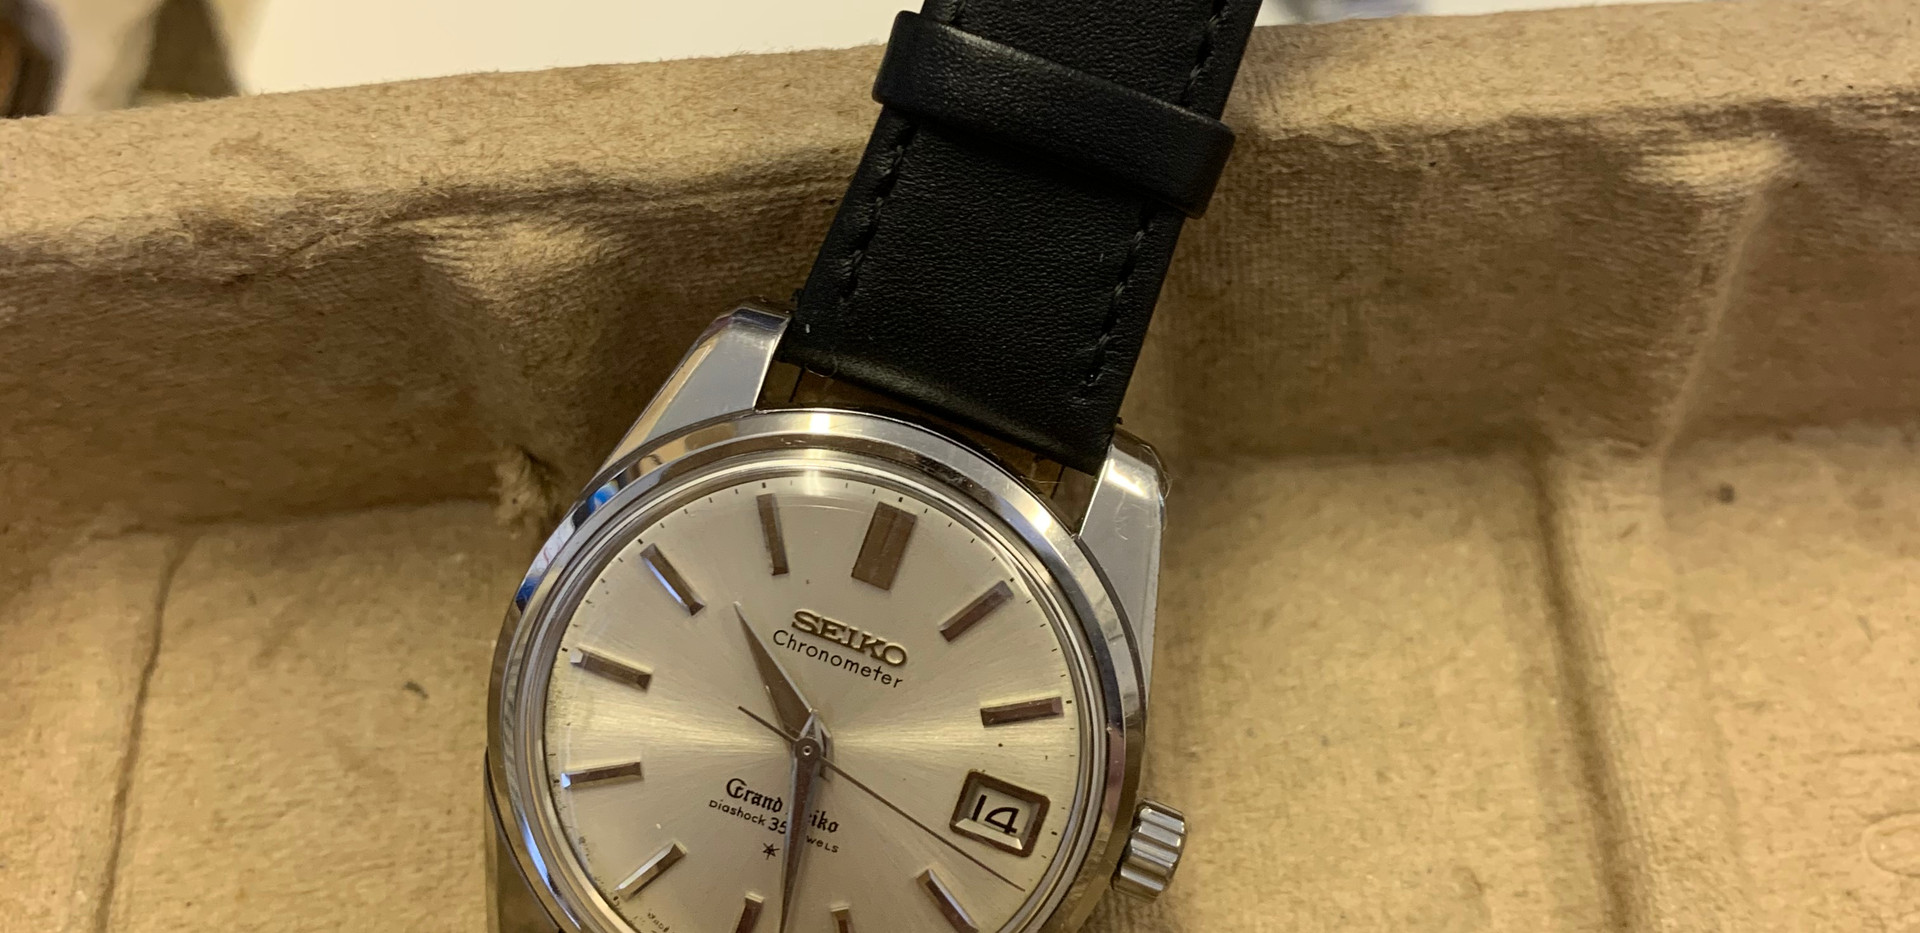 An absolutely stunning Vintage Grand Seiko Ref: 43999. There were some phenomenal watches that we saw, including a vintage AP and Patek, but this was one of my favourites...